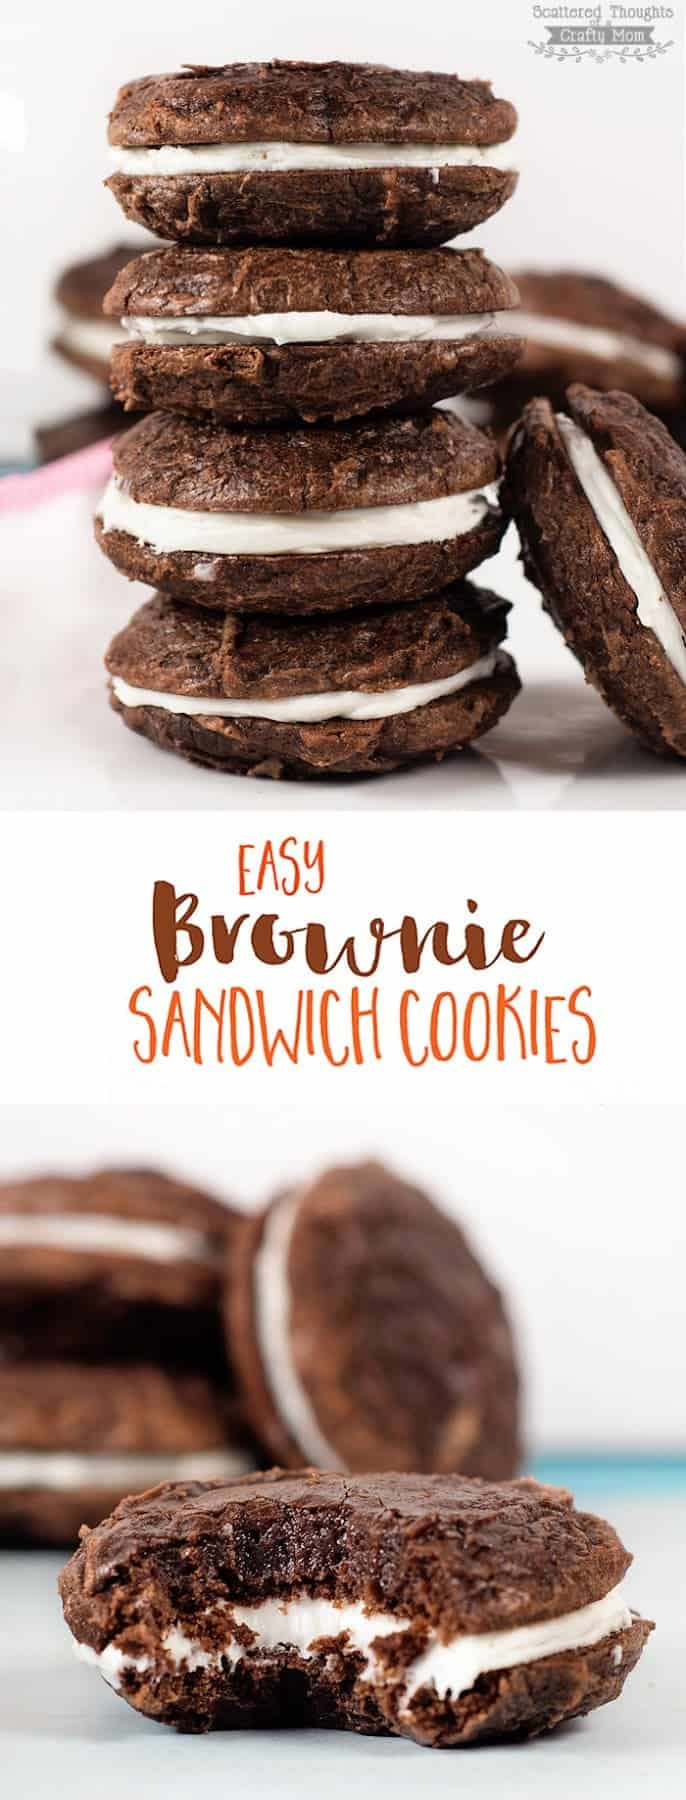 These Easy Brownie Sandwich Cookies are super easy to make since they are made using a boxed brownie mix!